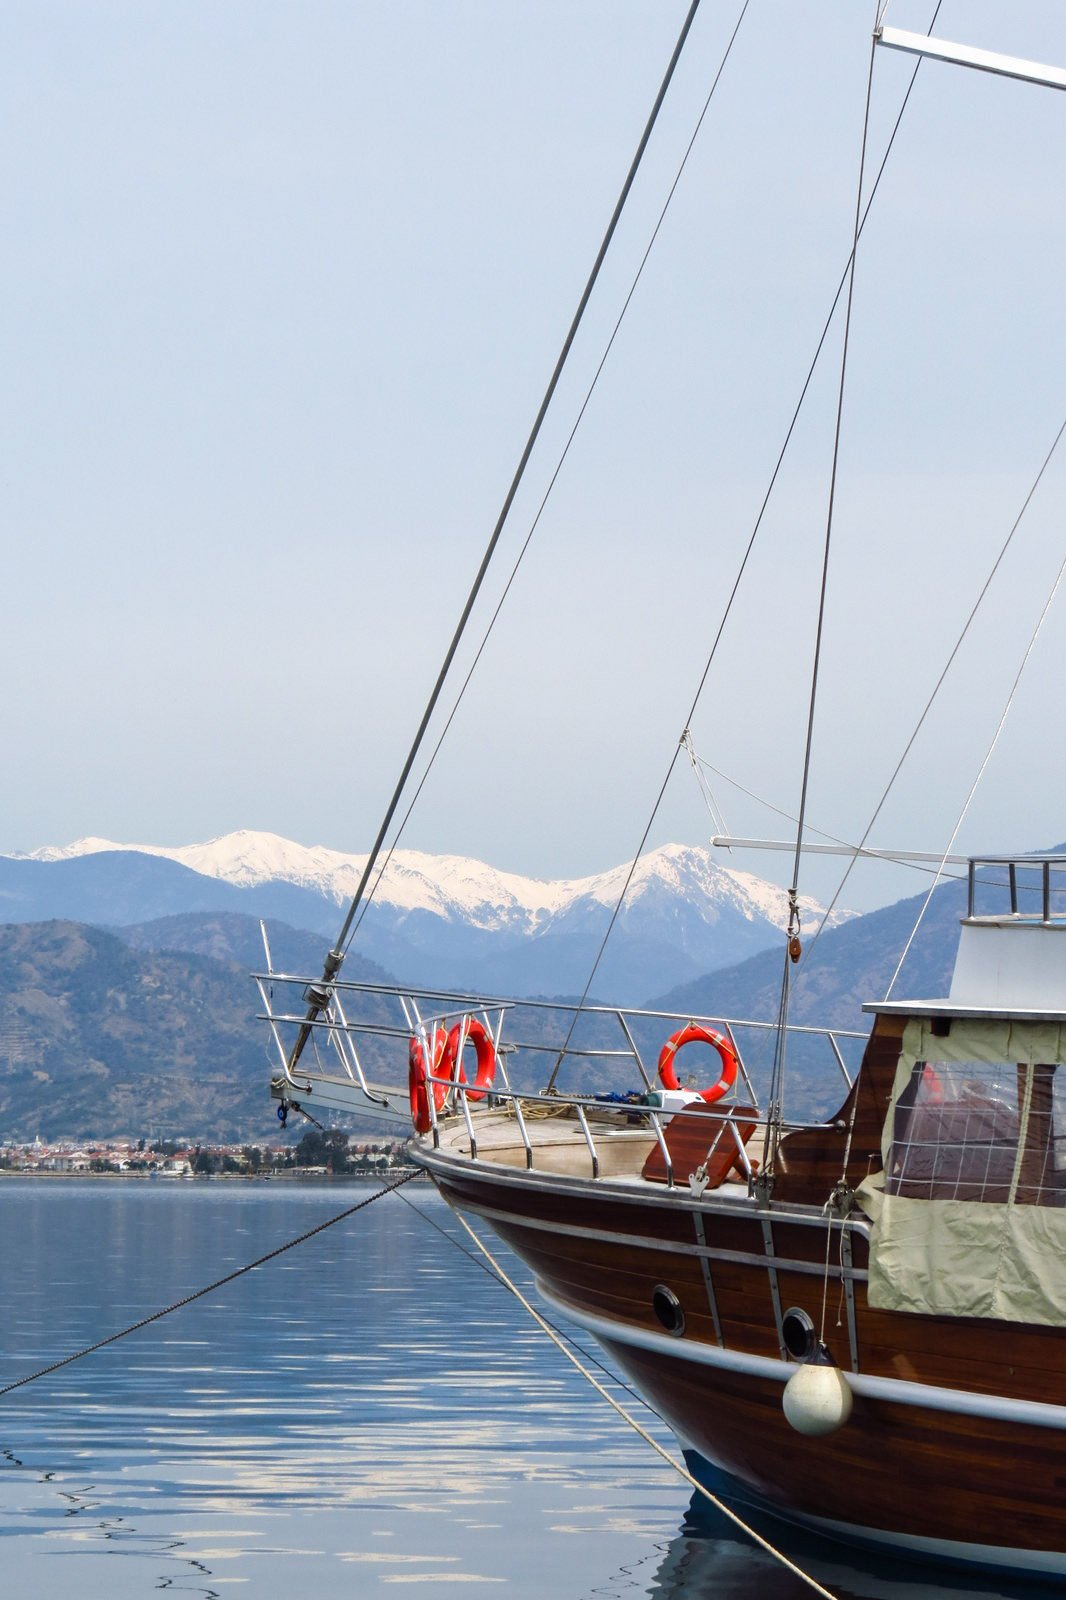 fethiye-marina-and-snow-mountains